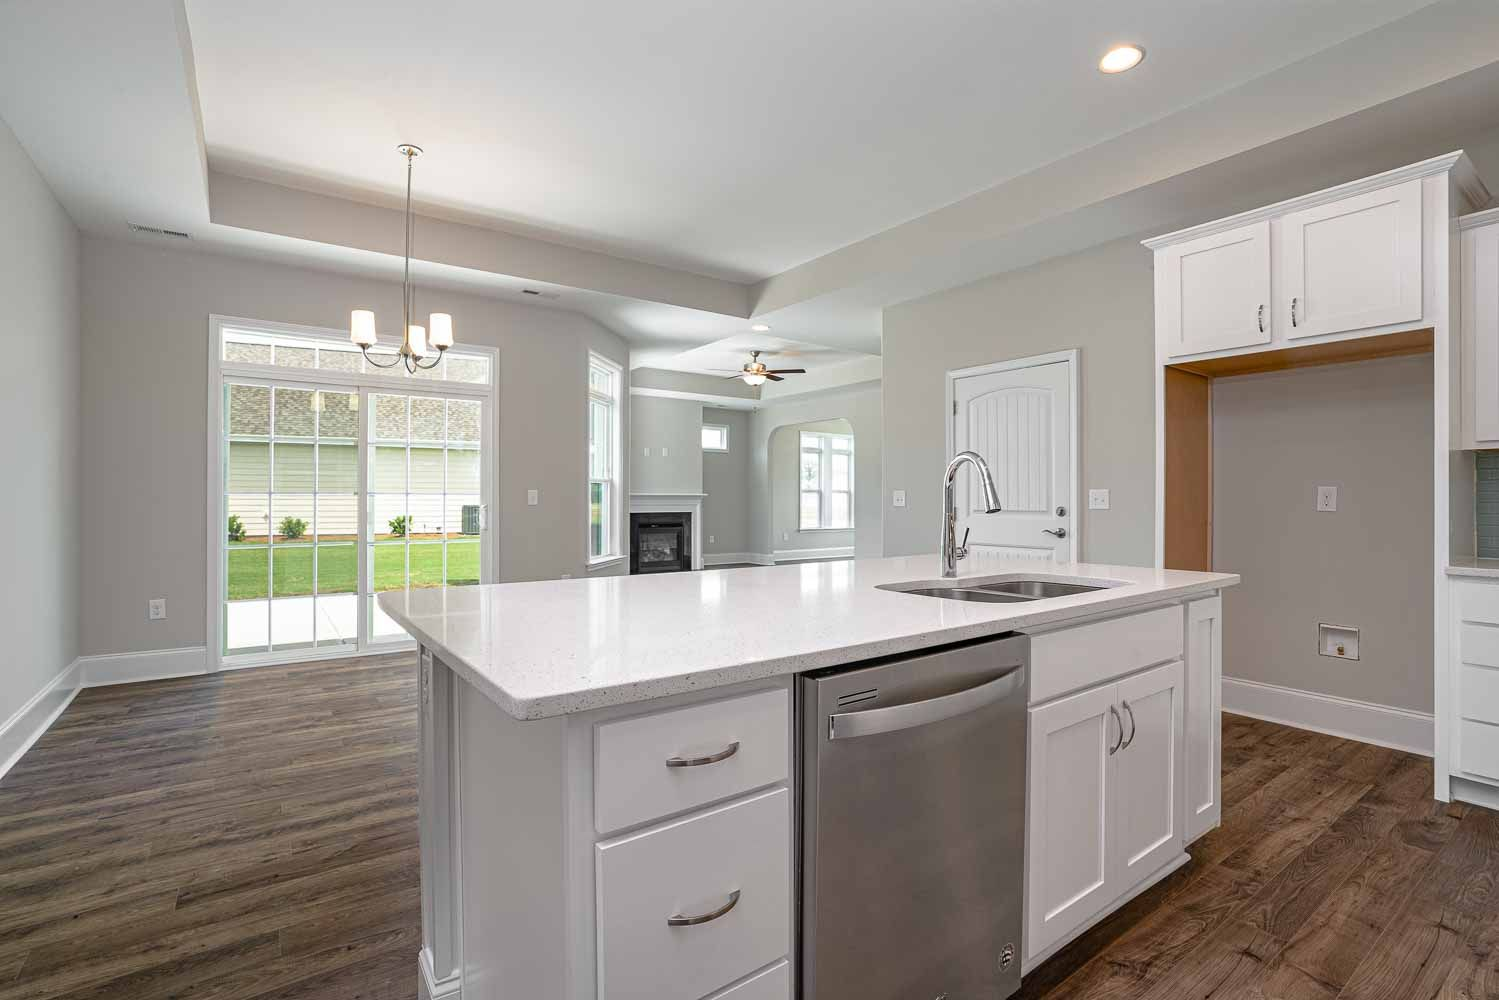 Kitchen featured in the Palazzo Craftsman By McKee Homes in Wilmington, NC